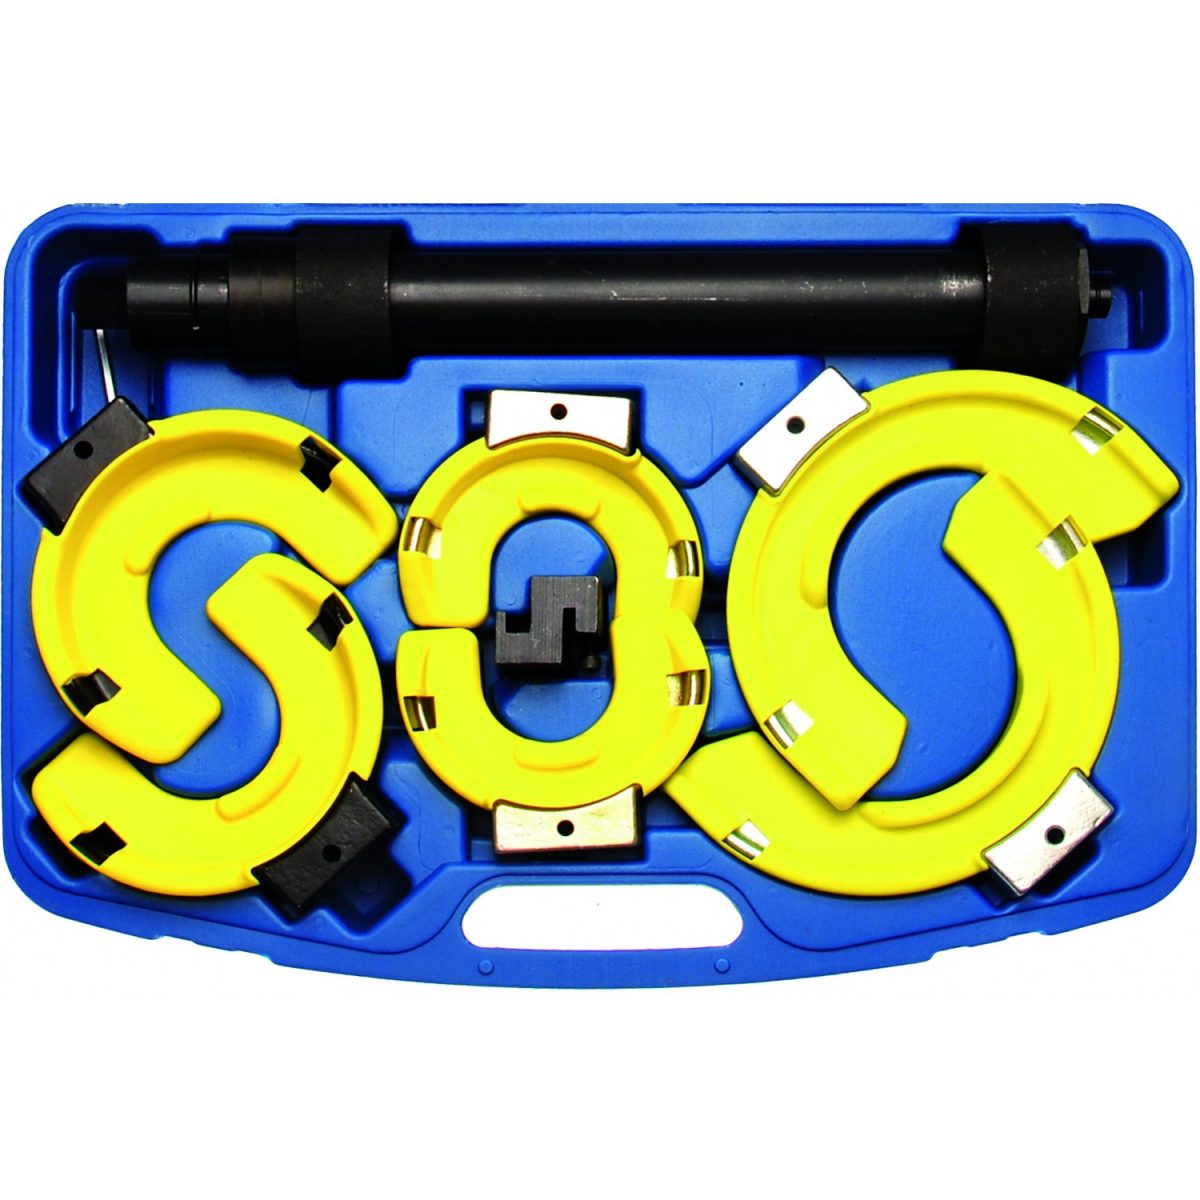 Spring Compressor Set with 3 Pairs of Jaws (980)